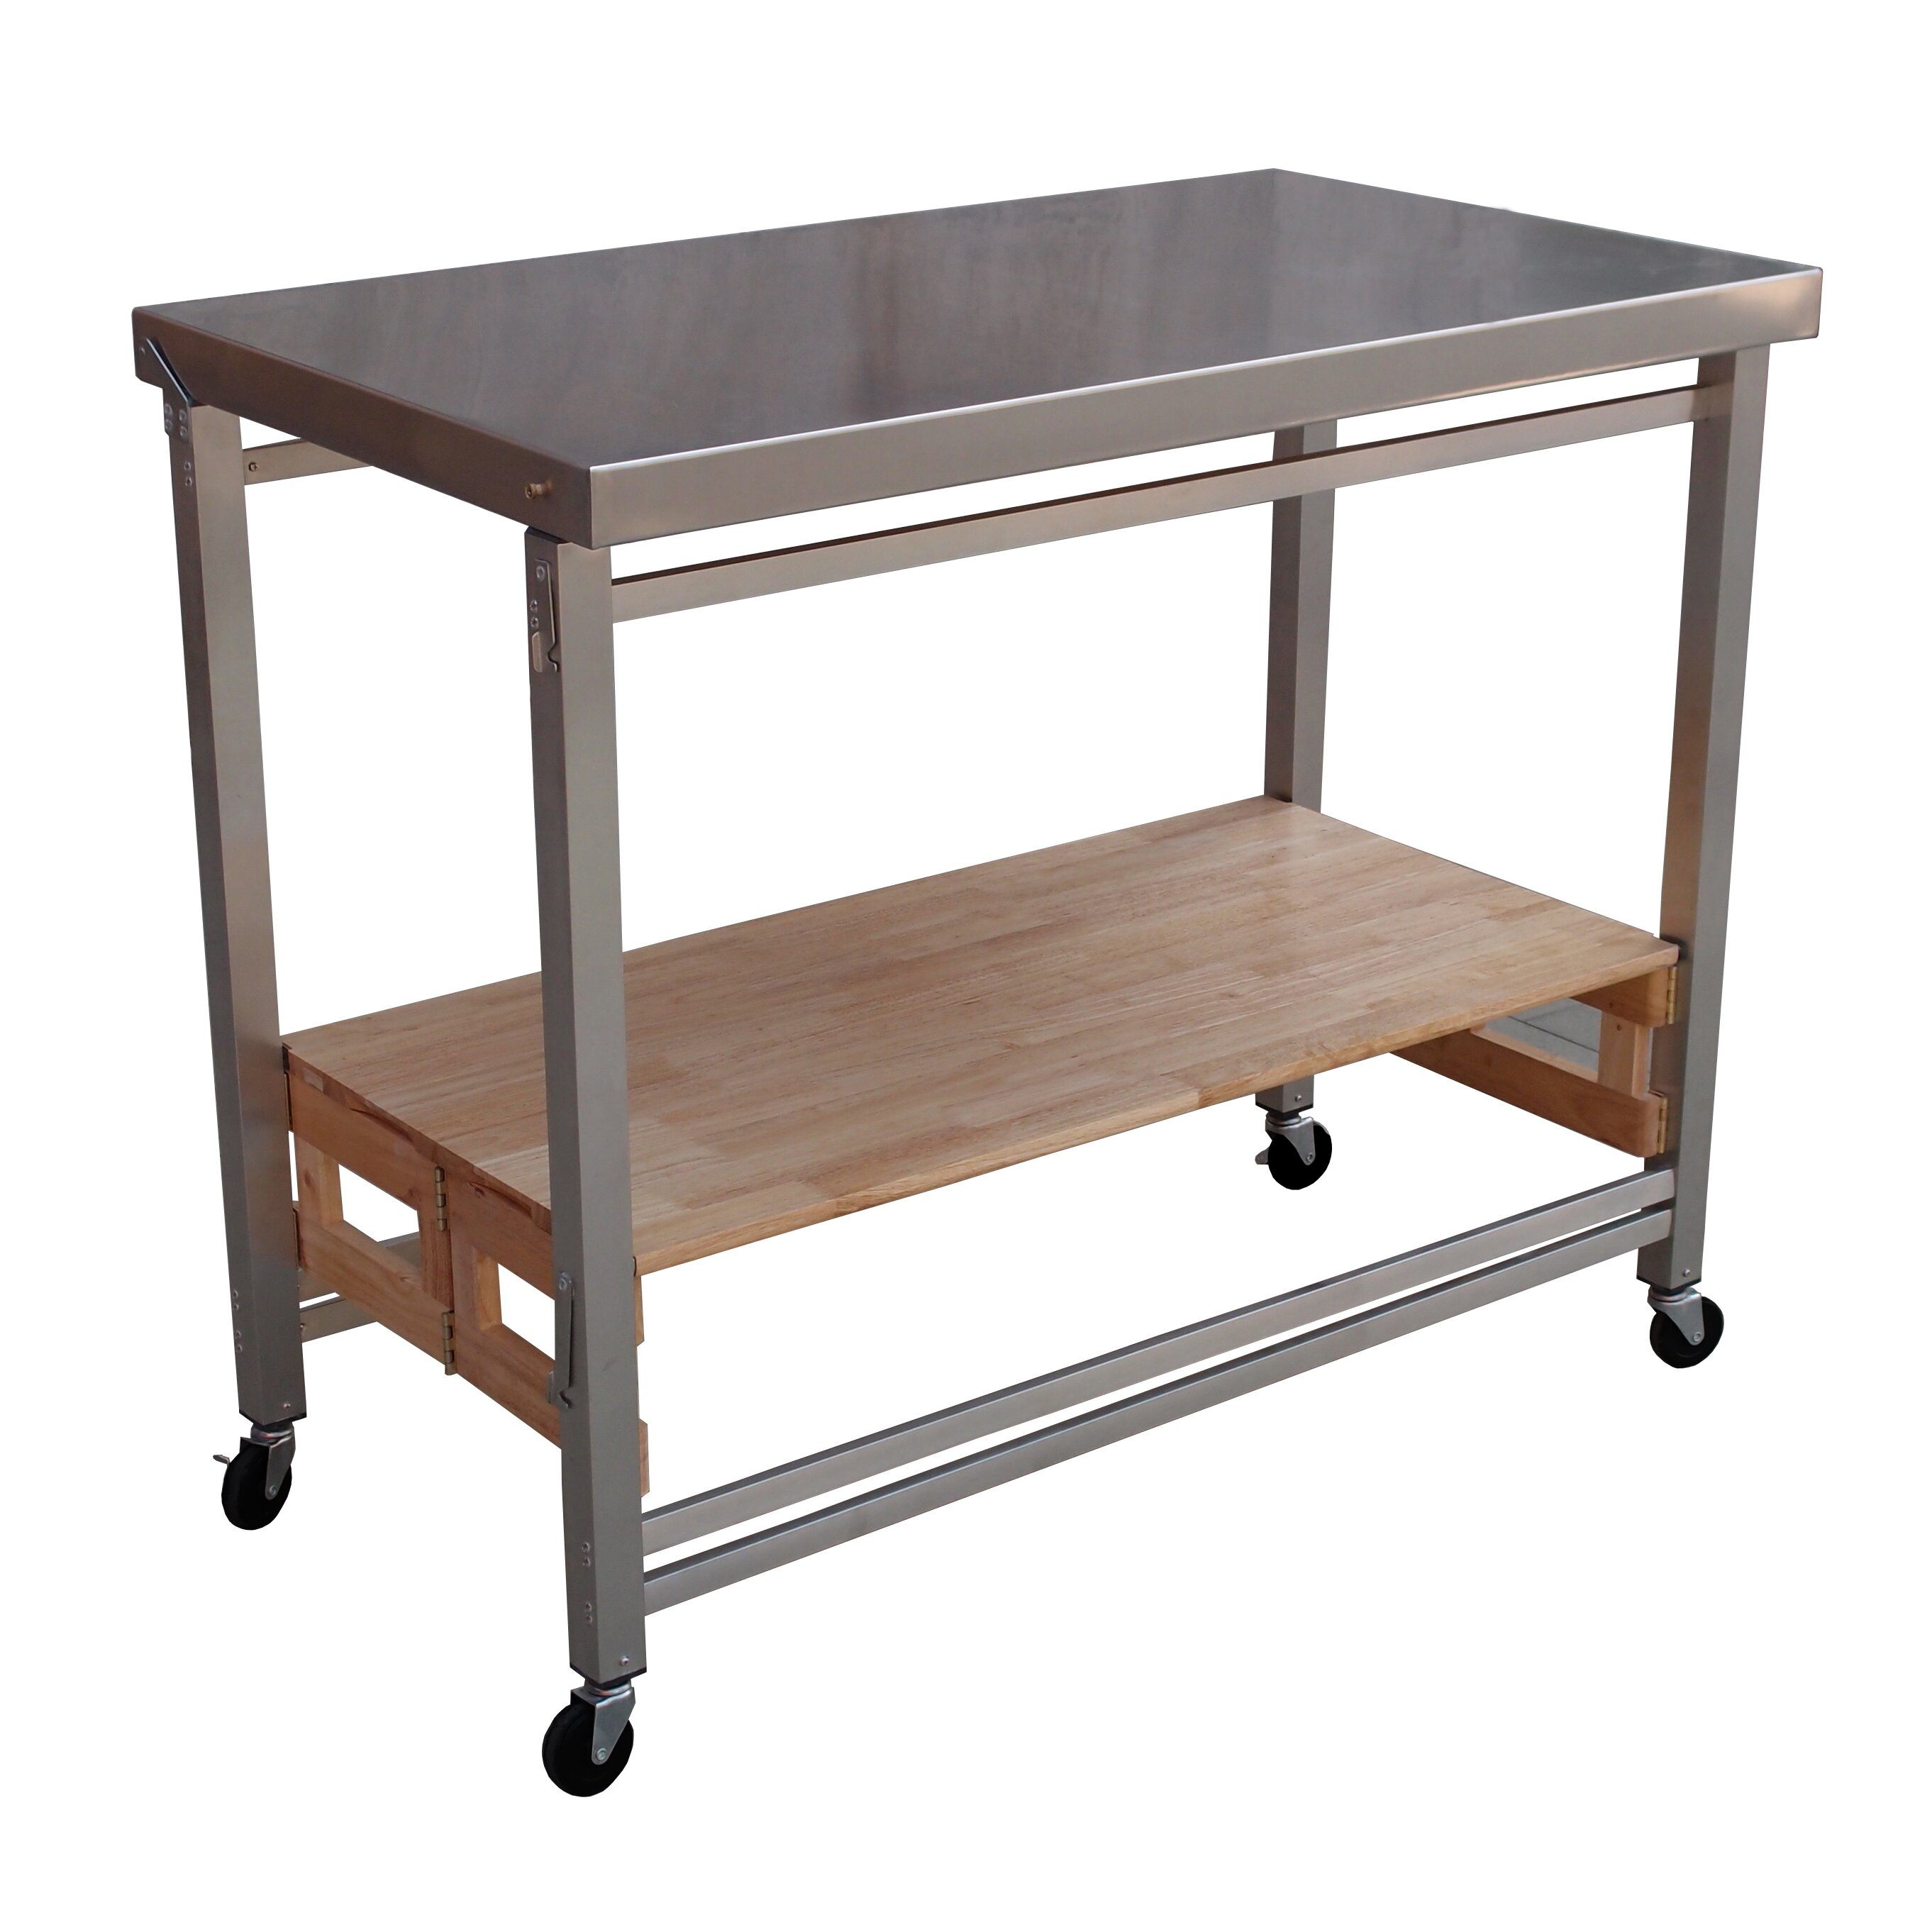 Kitchen Island With Stainless Steel Top: Oasis Concepts Folding Kitchen Island With Stainless Steel